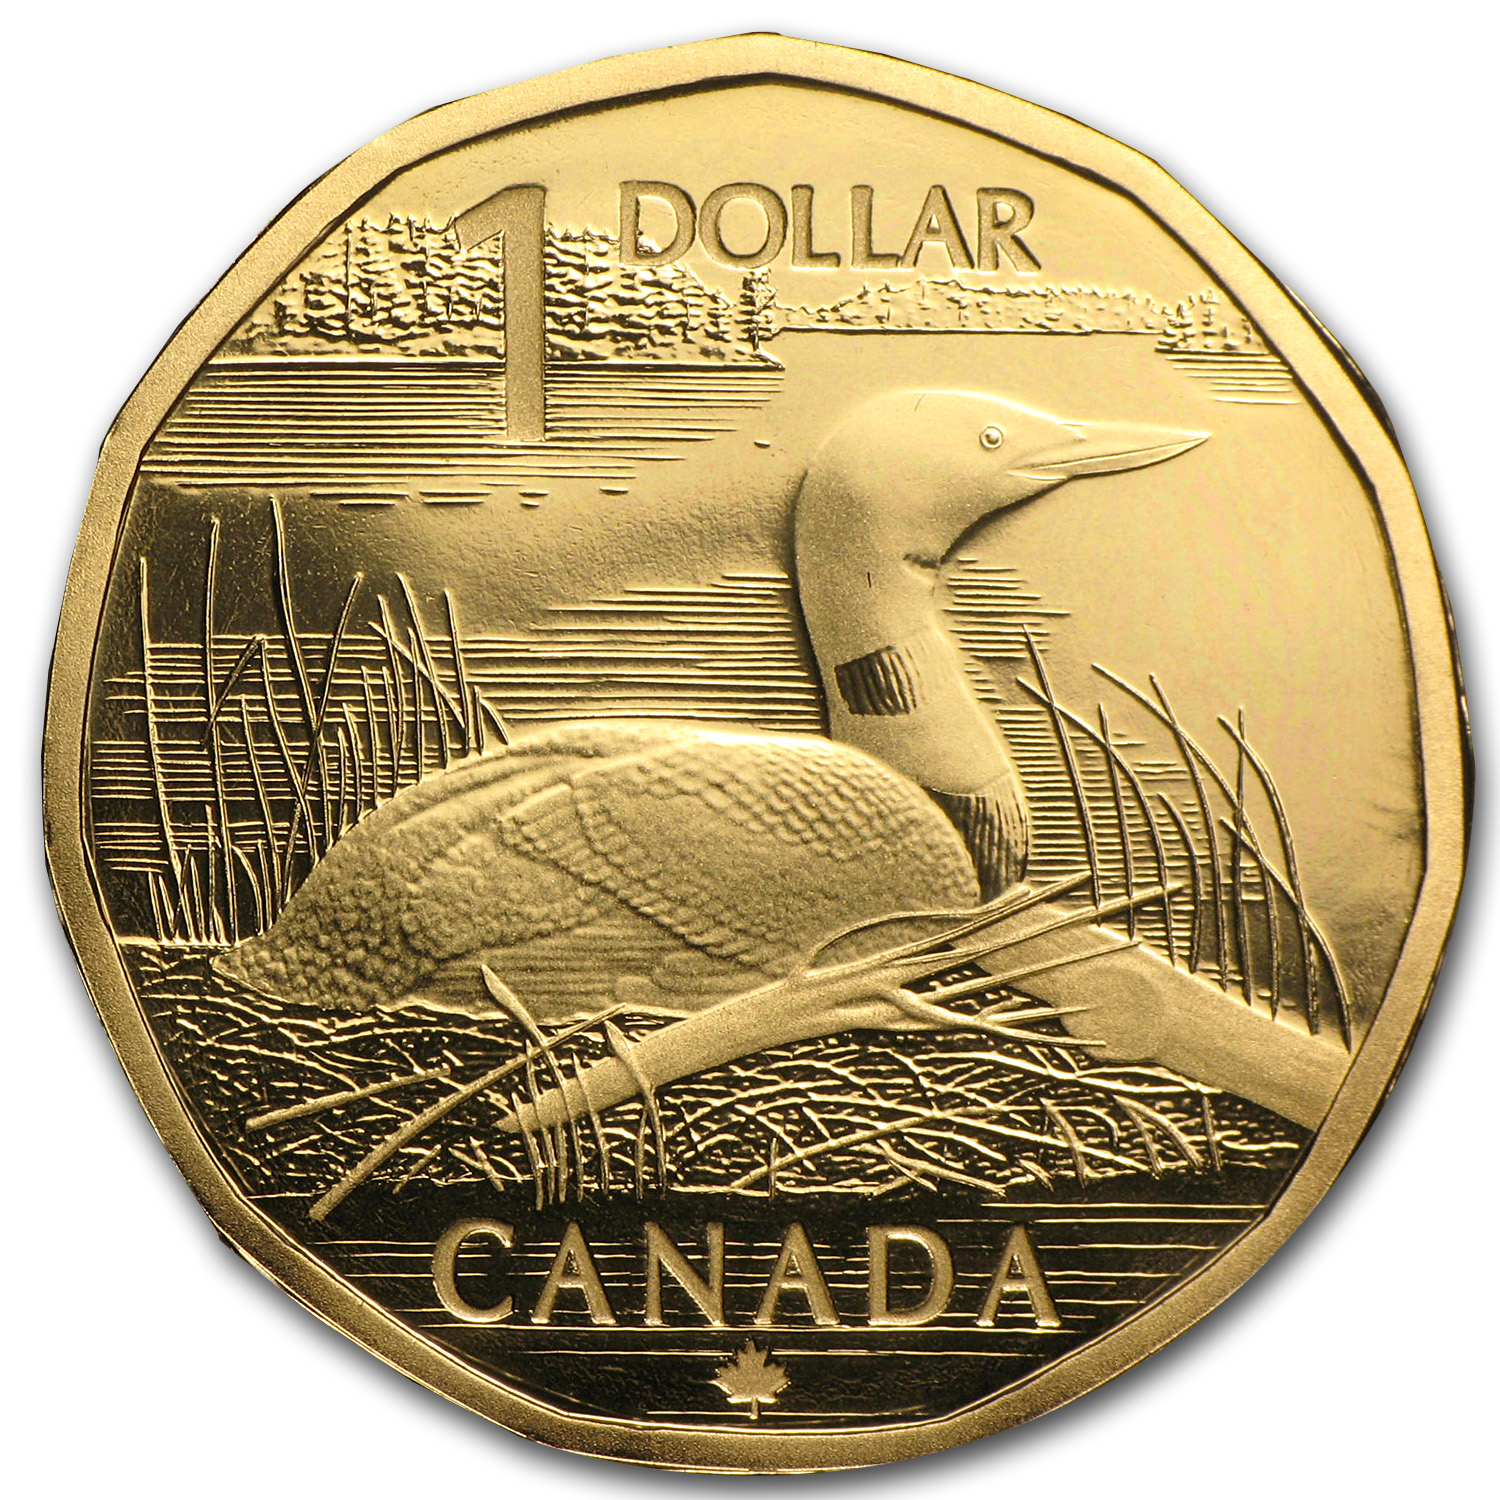 2004 Canada $1 The Elusive Loon Coin & Stamp Set